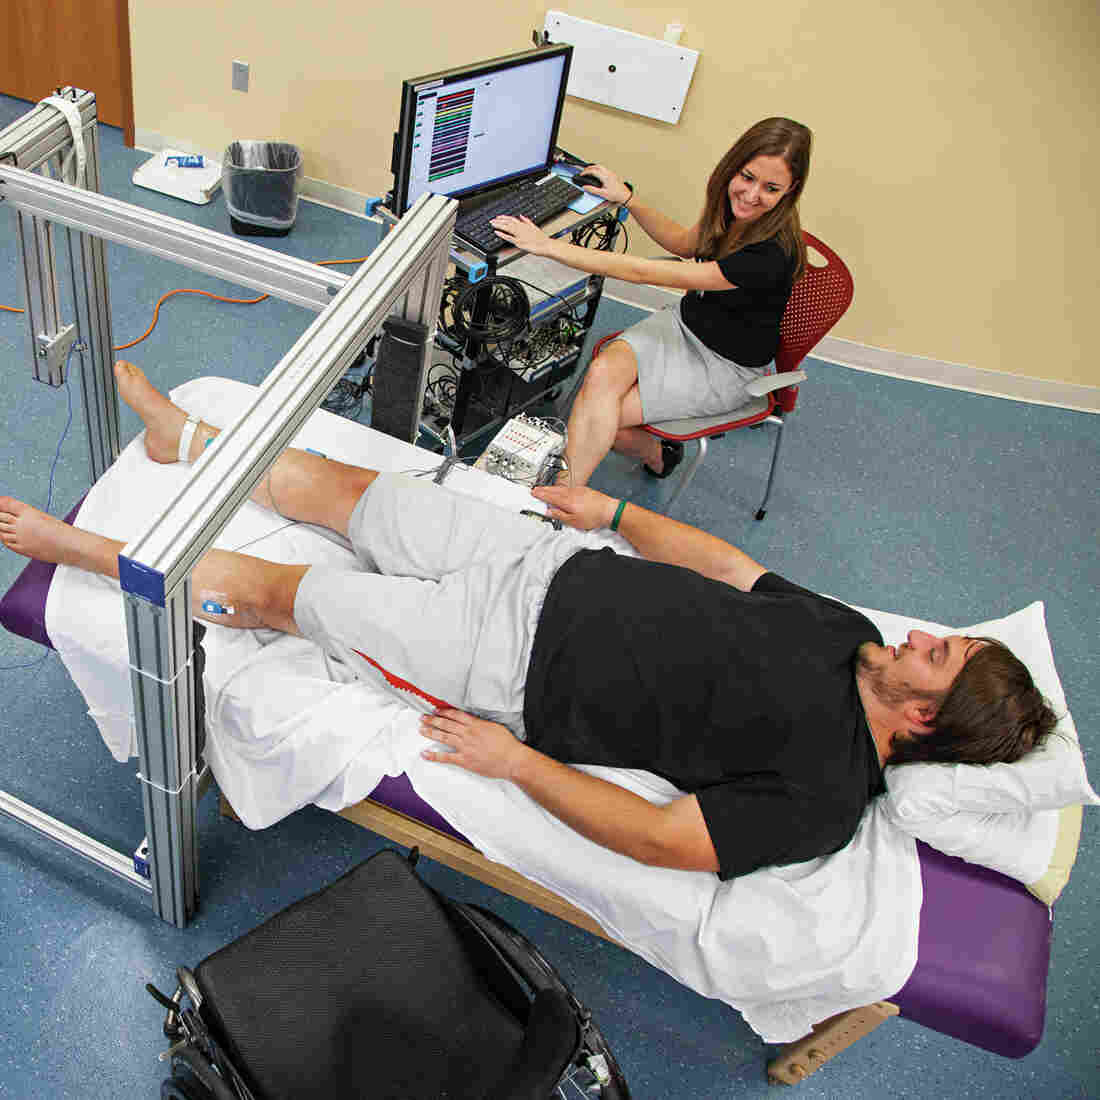 Kent Stephenson, a research participant at the University of Louisville's Kentucky Spinal Cord Injury Research Center, has his level of muscle activity and force measured by Katelyn Gurley.